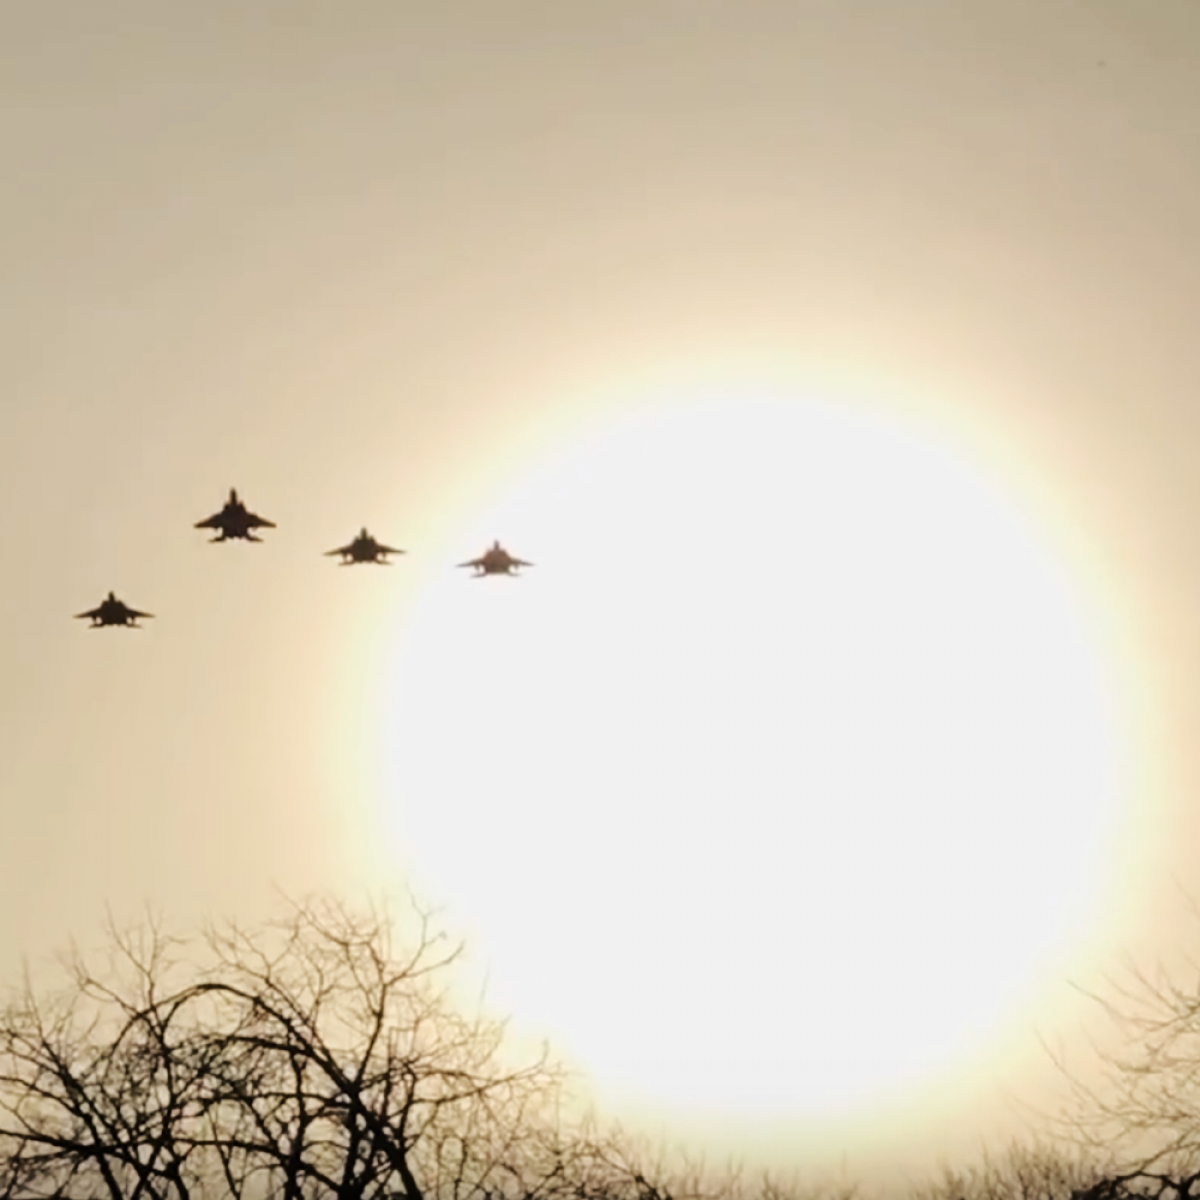 F-15s fly over Endcliffe Park for the Mi Amigo memorial flypast